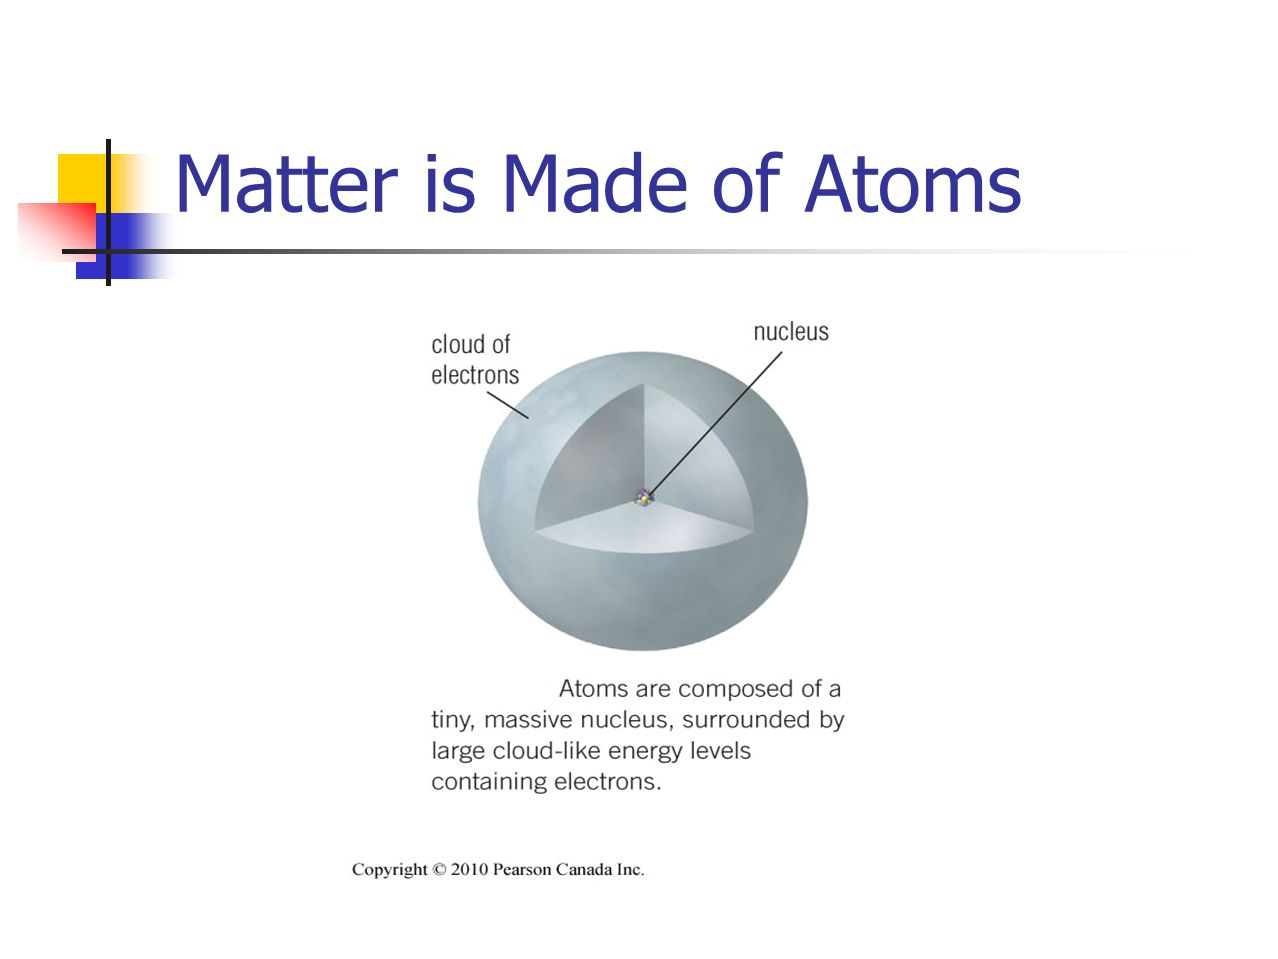 Matter is Made of Atoms